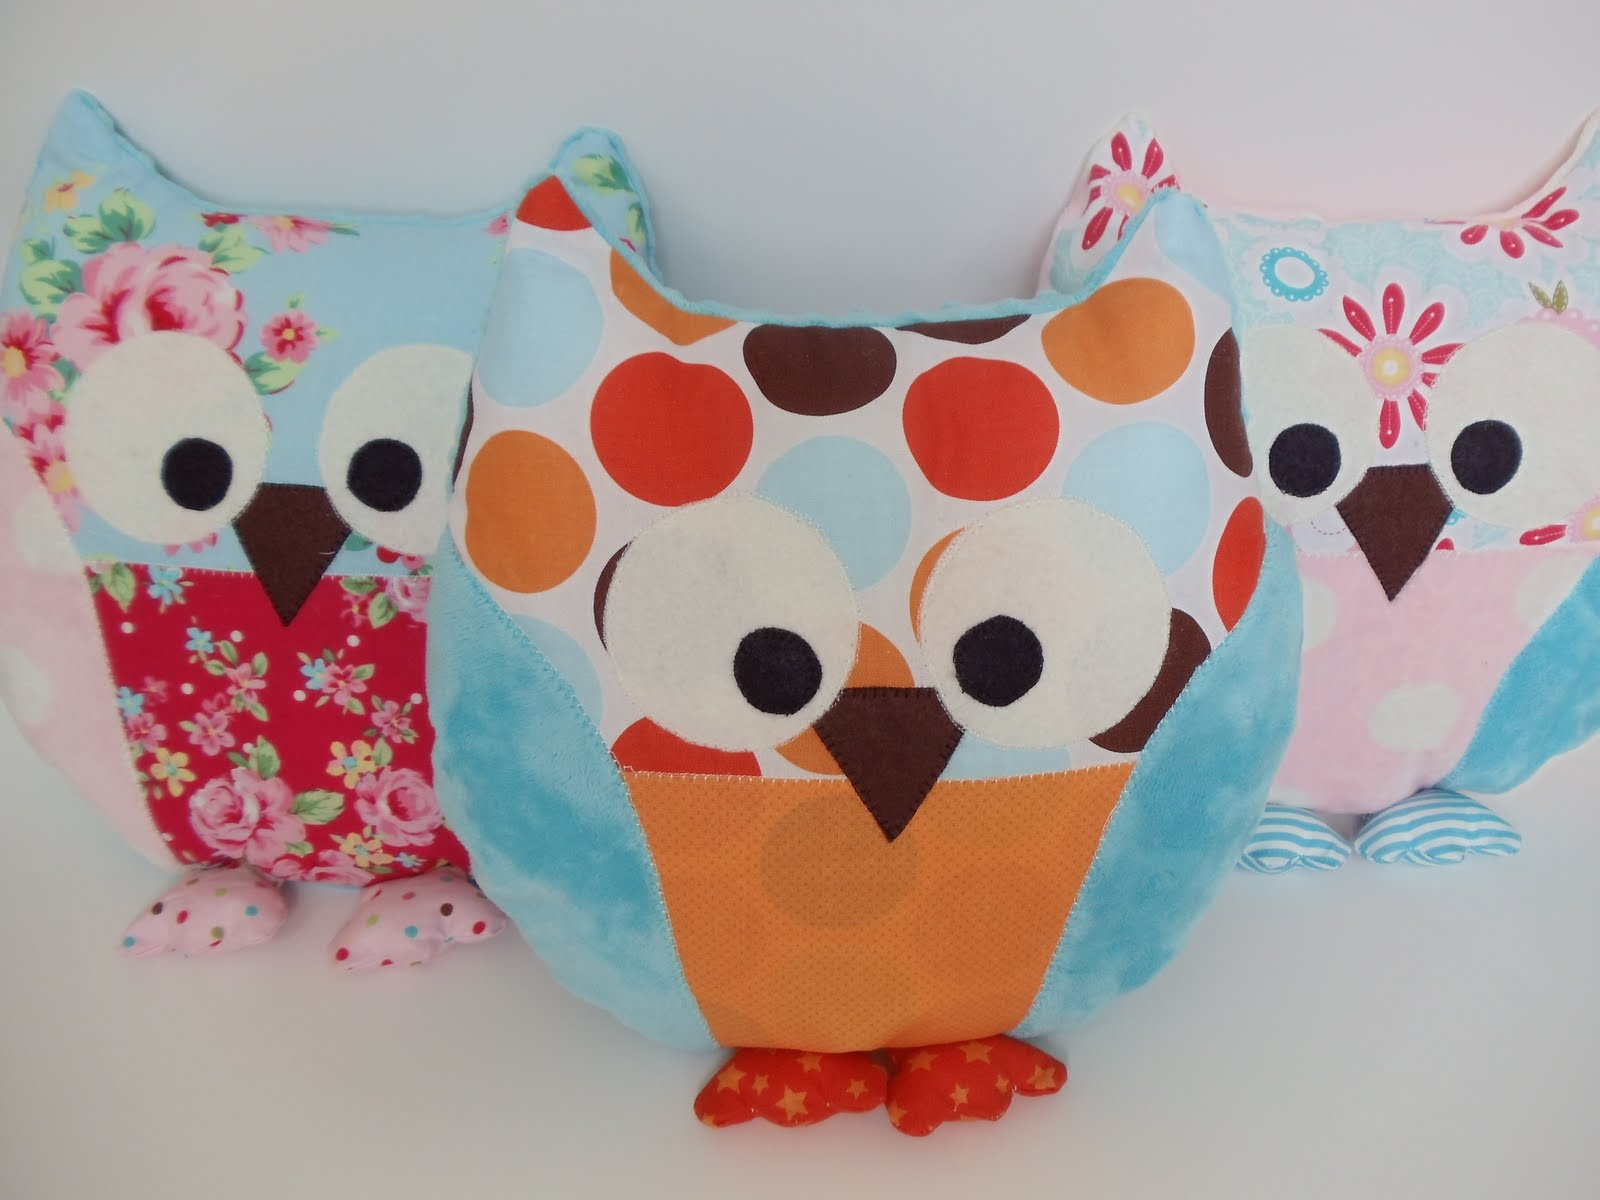 Sewing Patterns For Owl Pillows: My Cotton Creations  Sewing For Children   owl pillow pattern and    ,